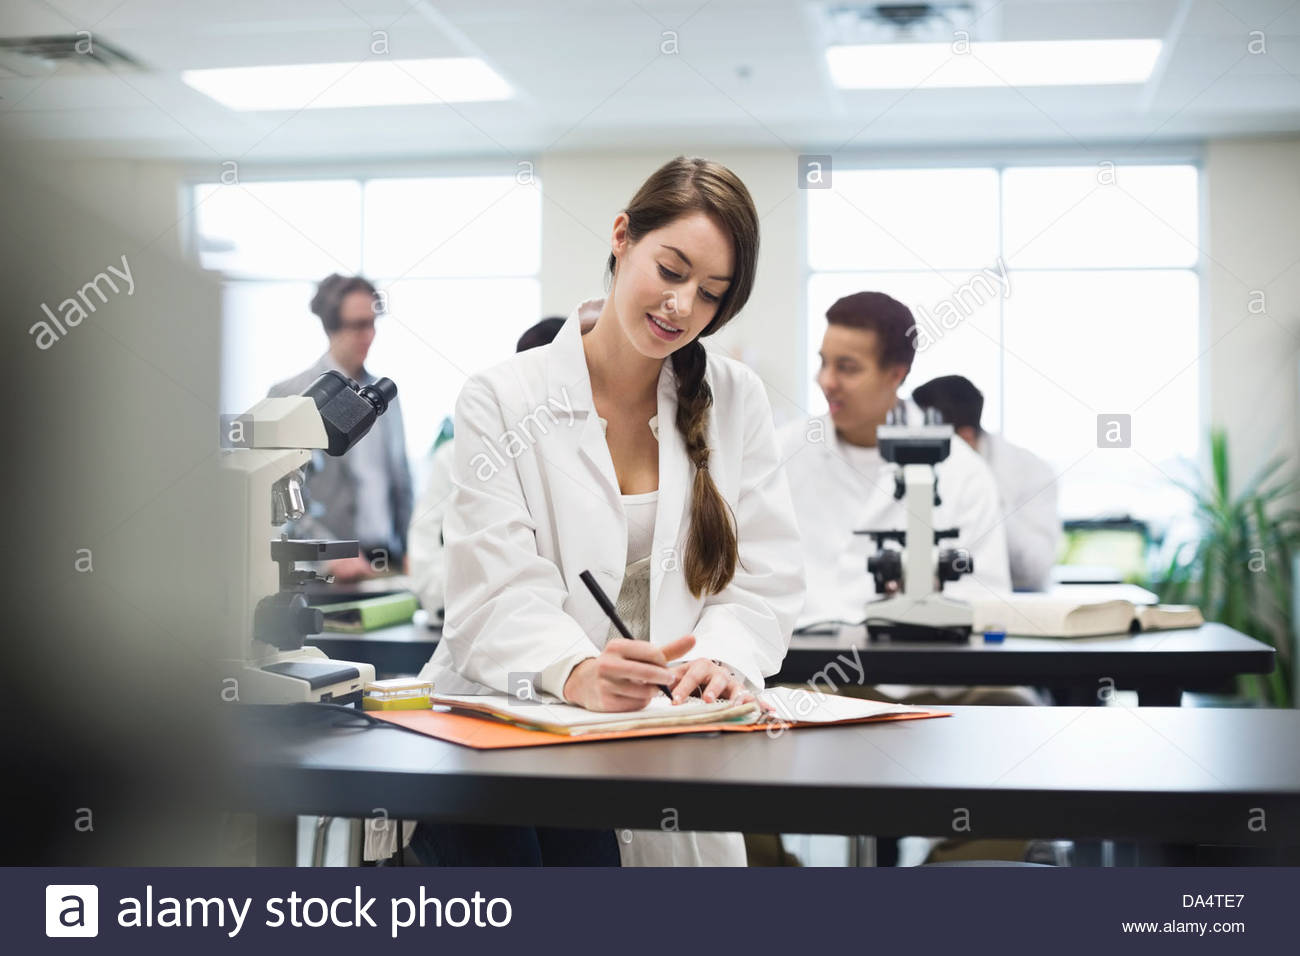 Female student writing notes in college science lab - Stock Image